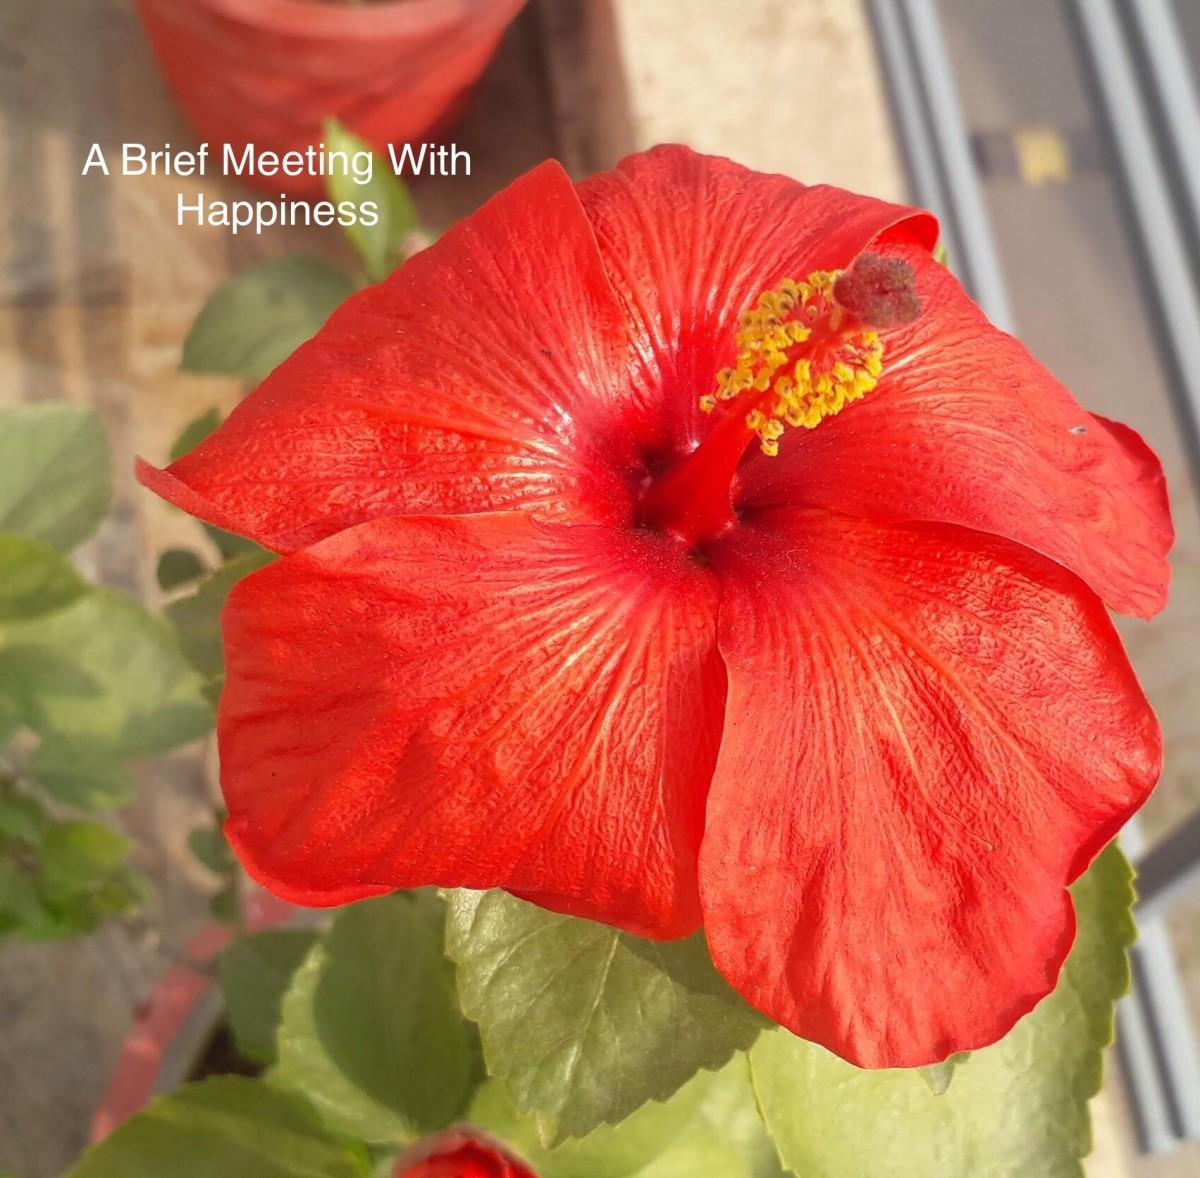 Happiness is short lived, just like a blooming flower.